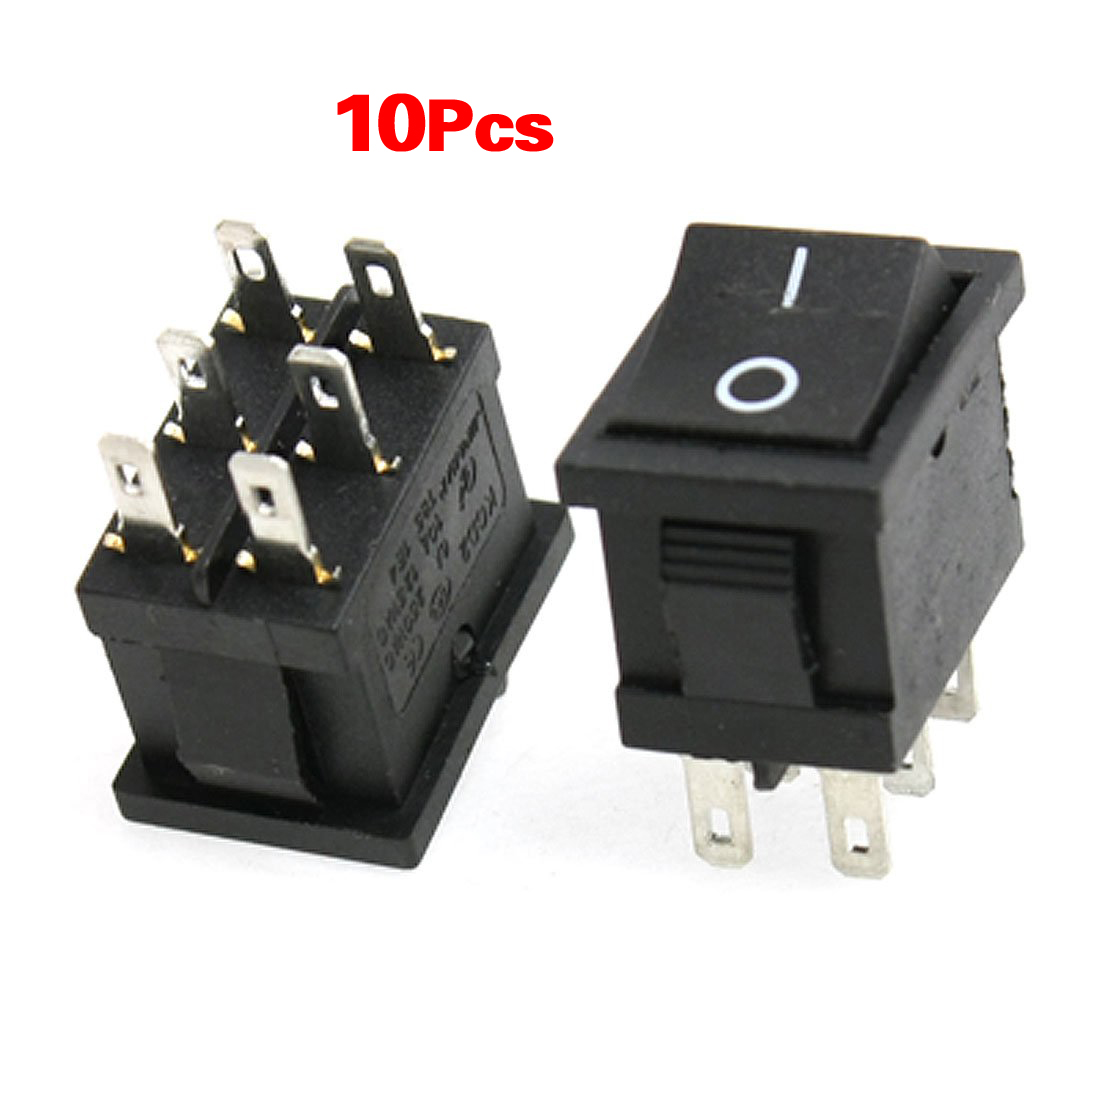 Promotion! 10pcs AC 6A/250V 10A/125V 6 Pin DPDT ON/ON 2 Position Snap In Boat Rocker Switch 5pcs kcd1 perforate 21 x 15 mm 6 pin 2 positions boat rocker switch on off power switch 6a 250v 10a 125v ac new hot